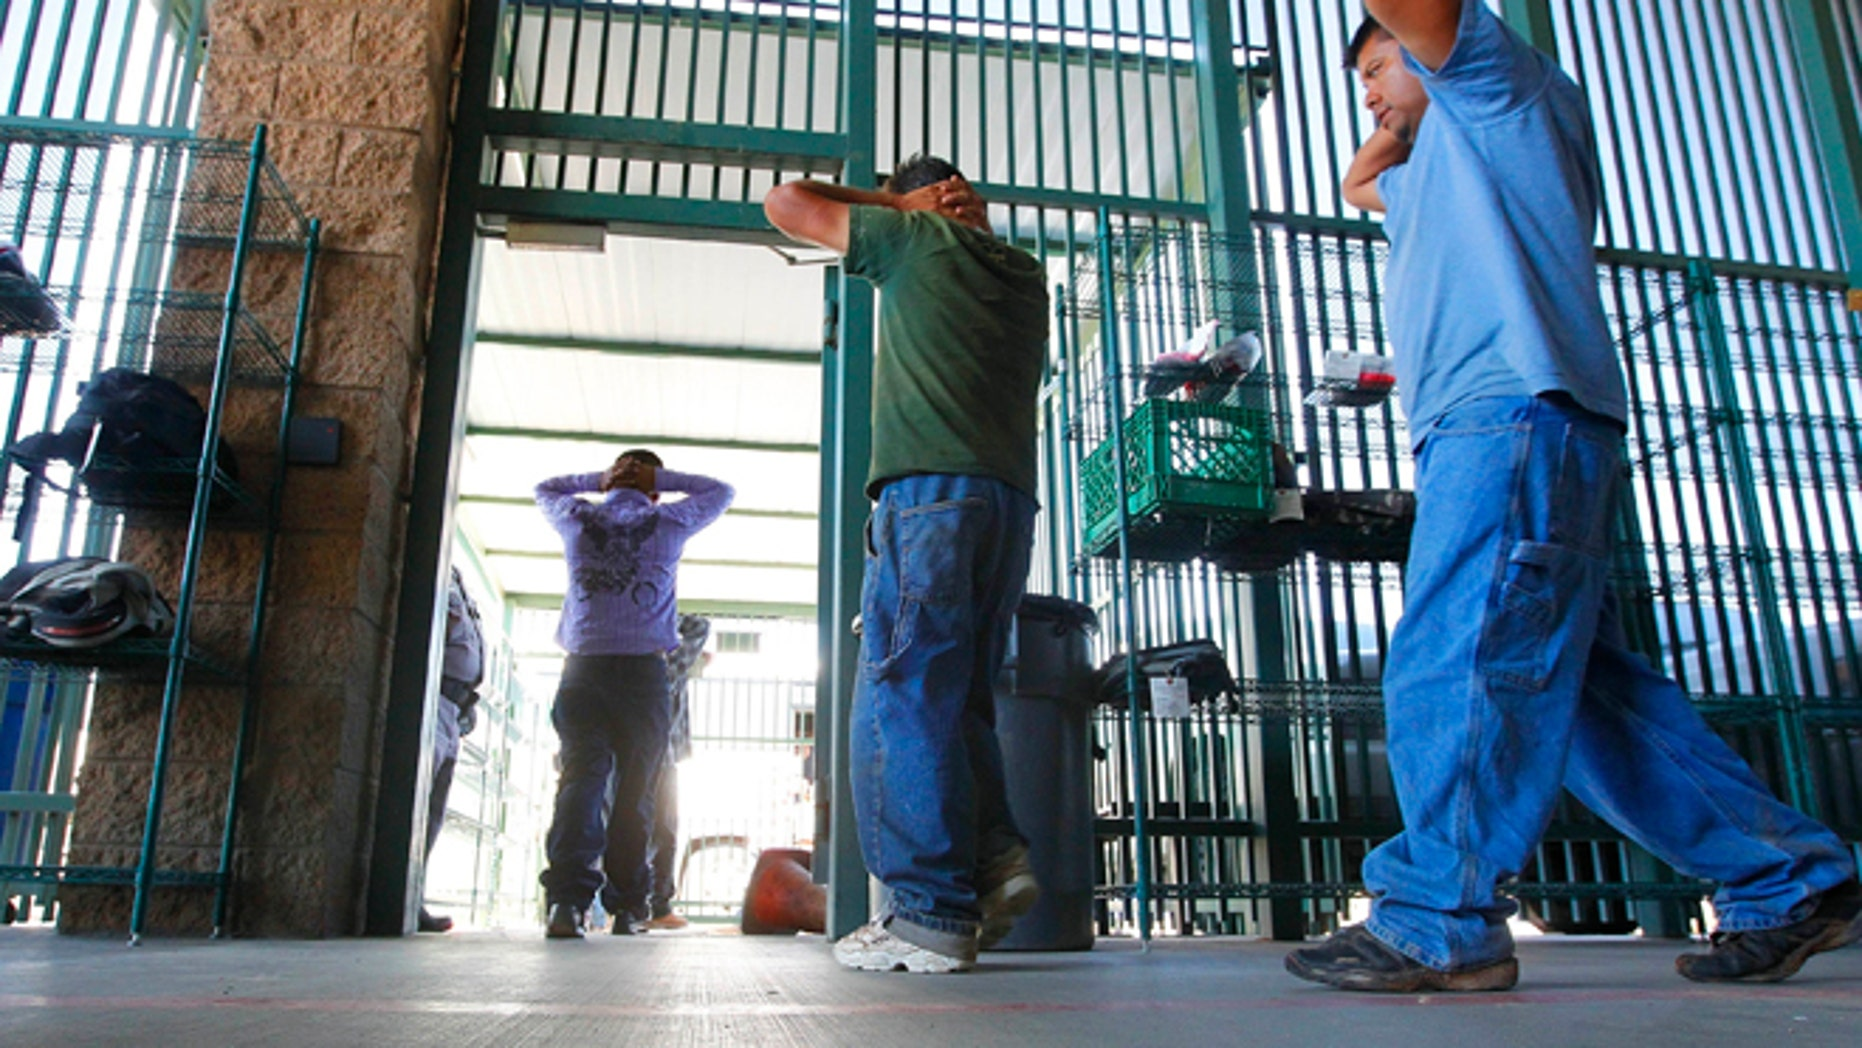 In this Aug. 9, 2012, file photo, suspected illegal immigrants are transferred out of the holding area after being processed at the Tucson Sector of the U.S. Customs and Border Protection headquarters in Tucson, Ariz.